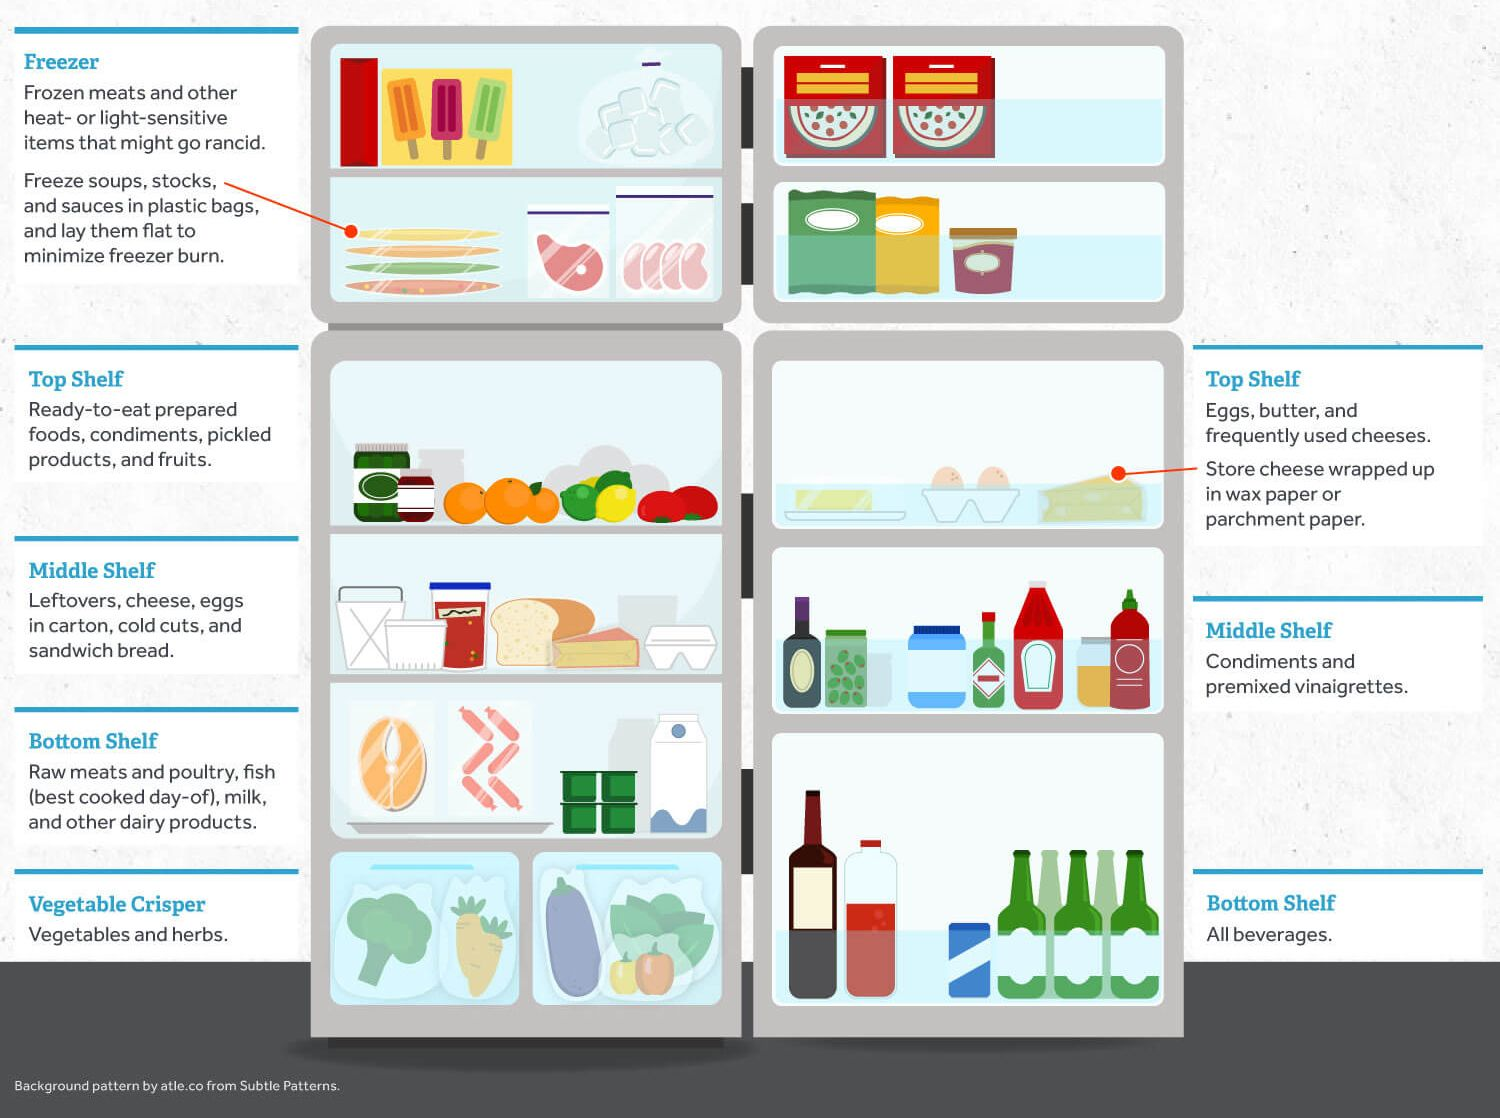 How To Organize Your Refrigerator For Better Food Storage